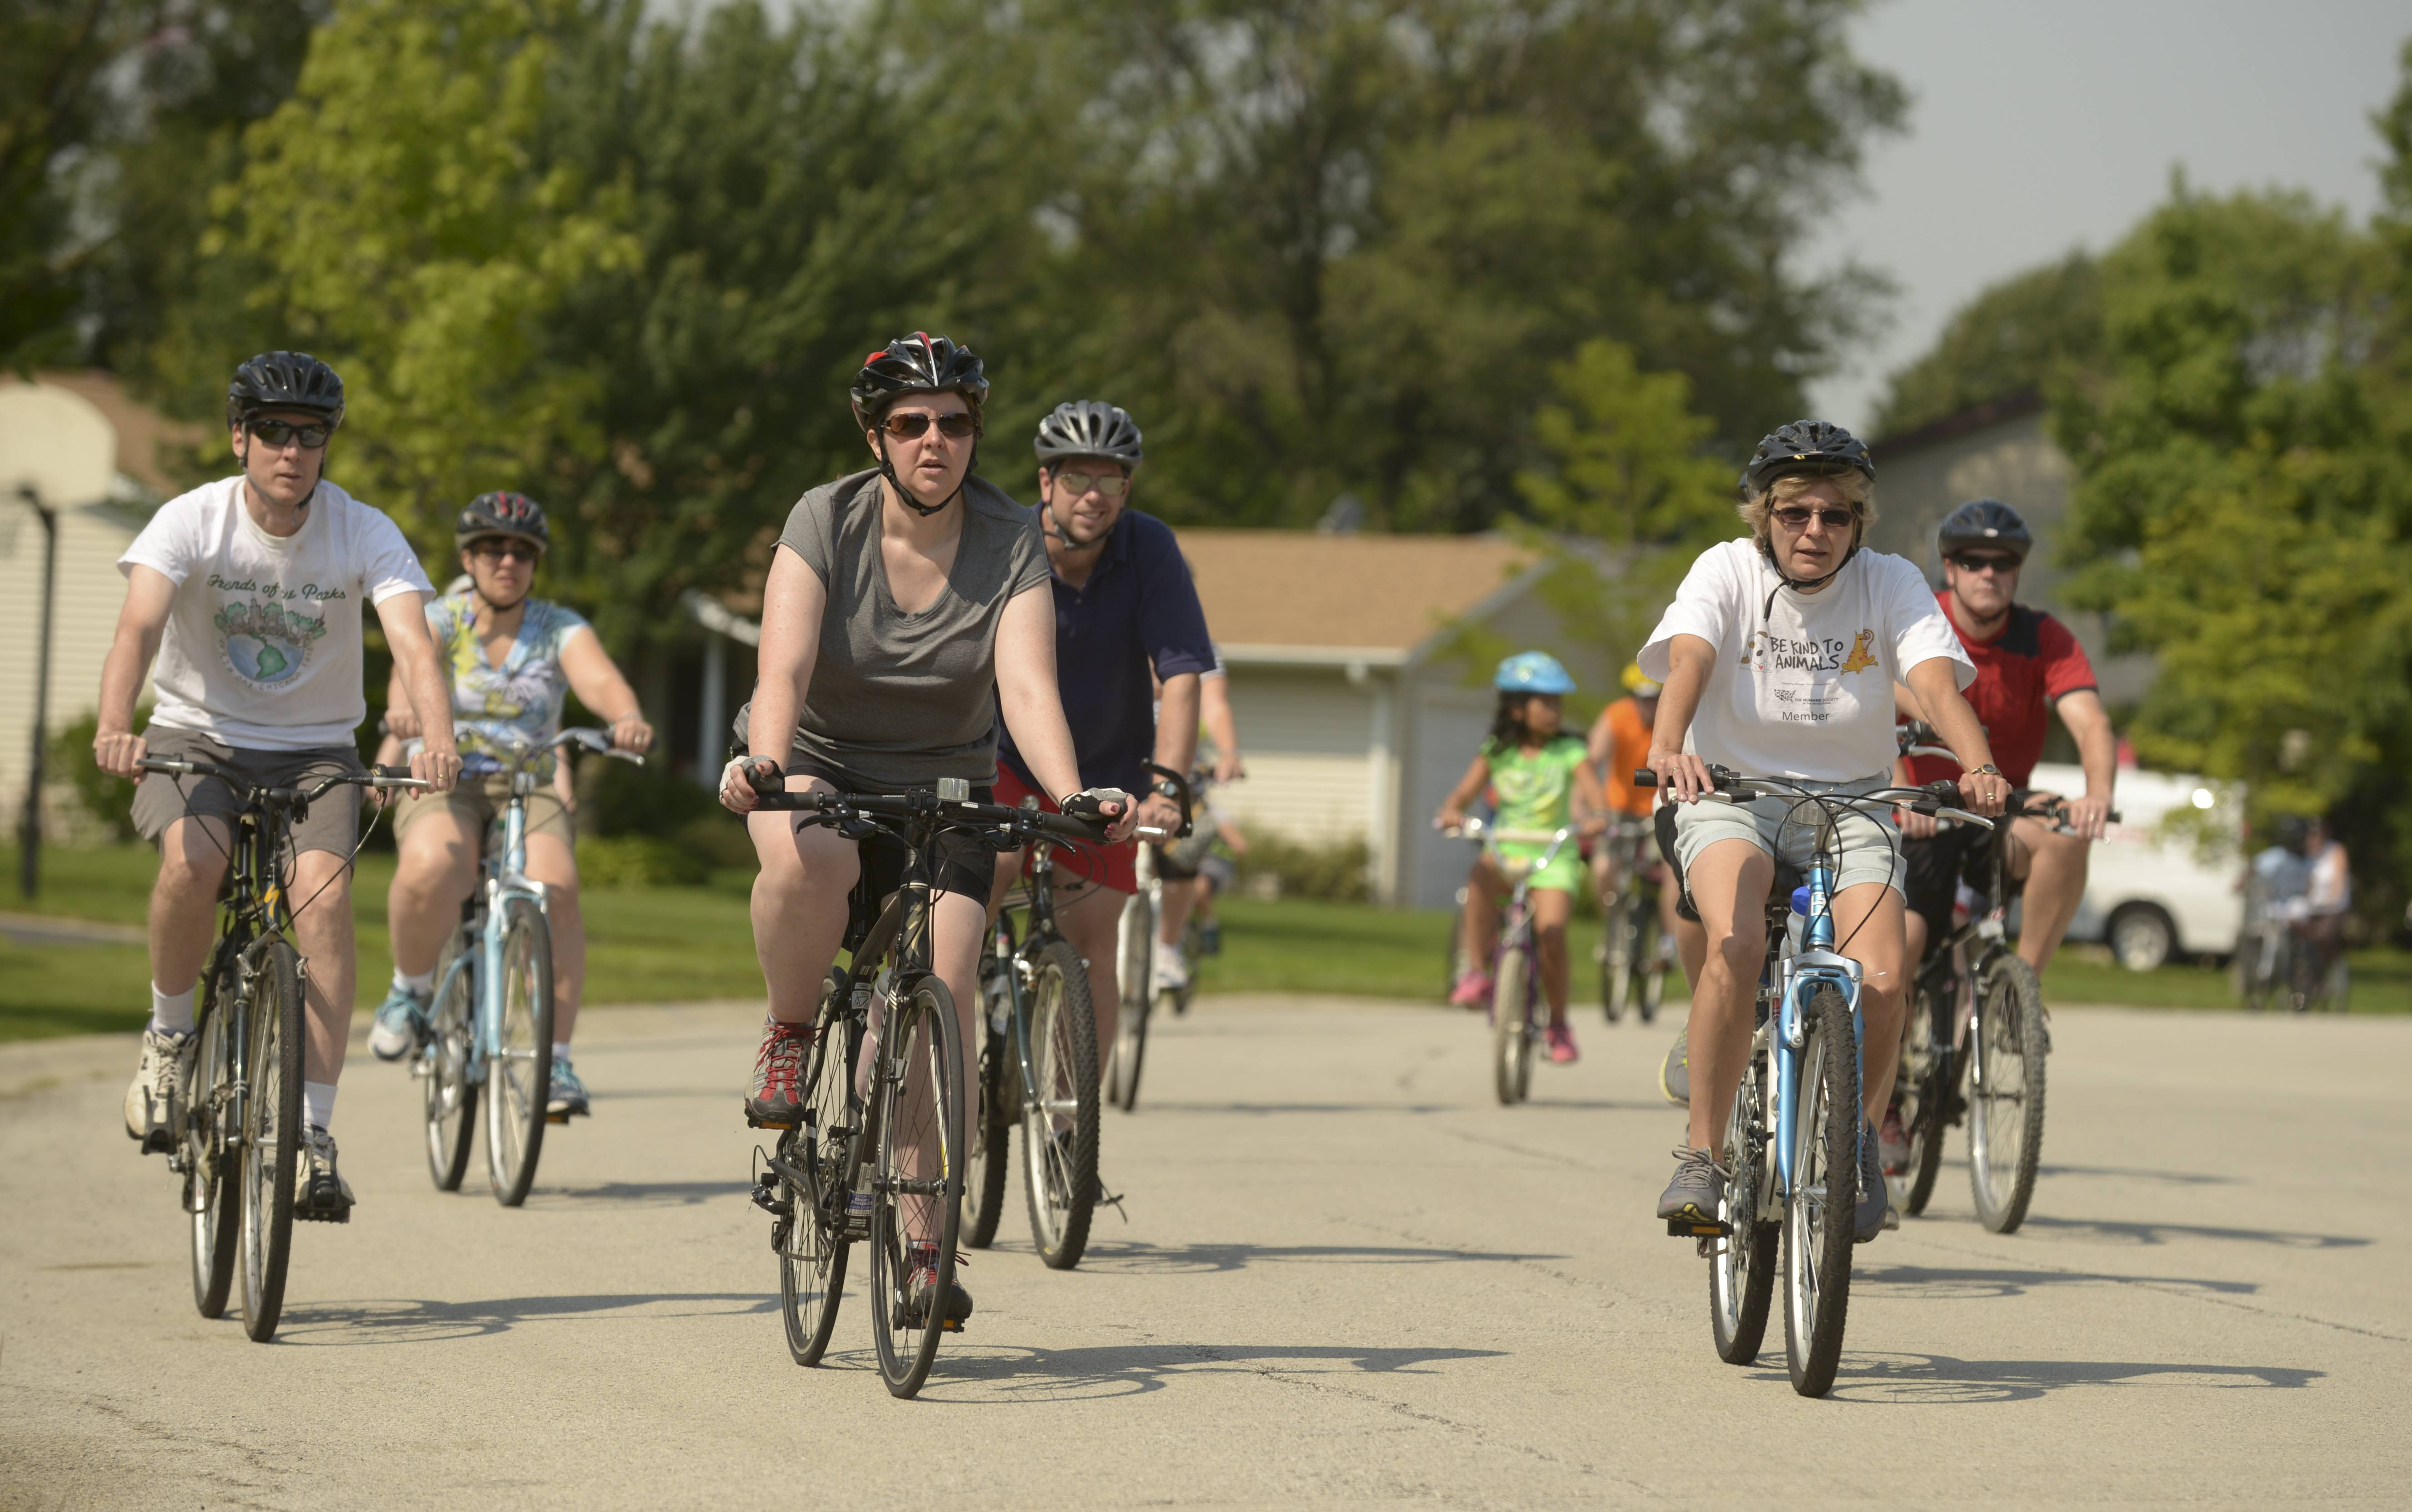 Cyclists participate in the annual Ride with the Mayor event Saturday in Elk Grove Village, heading out on the five-mile ride to help encourage biking in the village.